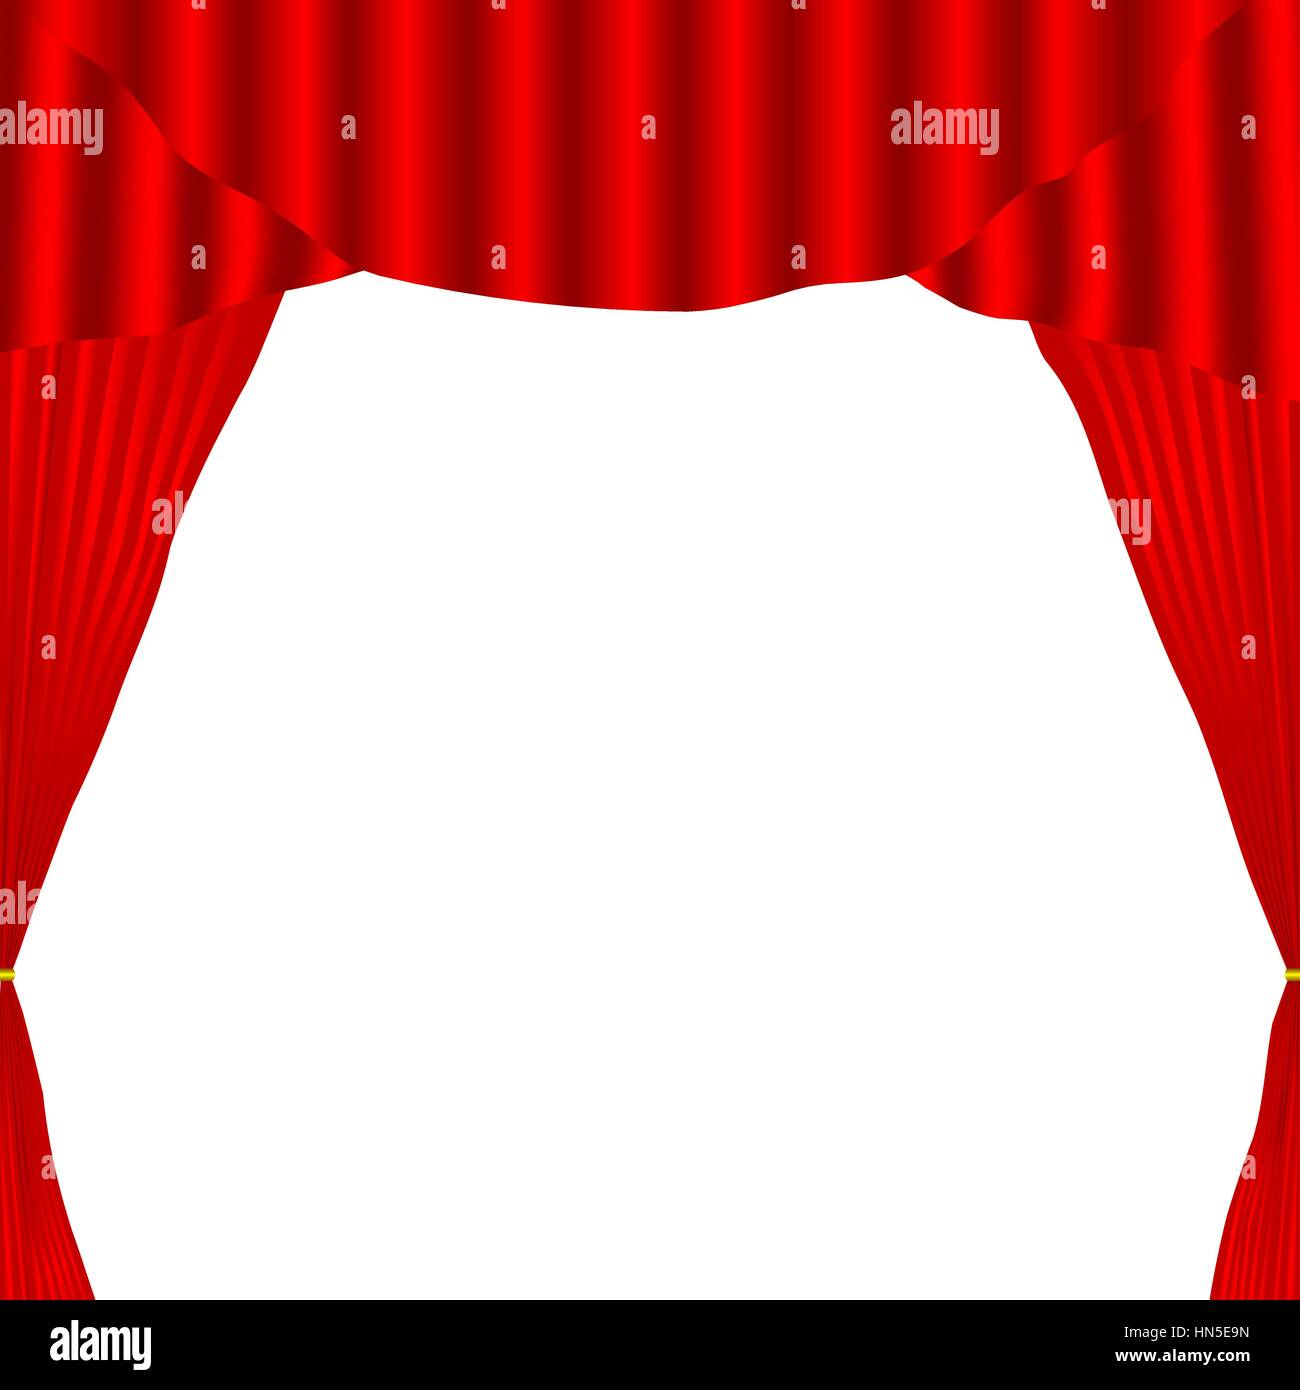 Red curtain opened on white background. Vector illustration,EPS 10. - Stock Vector